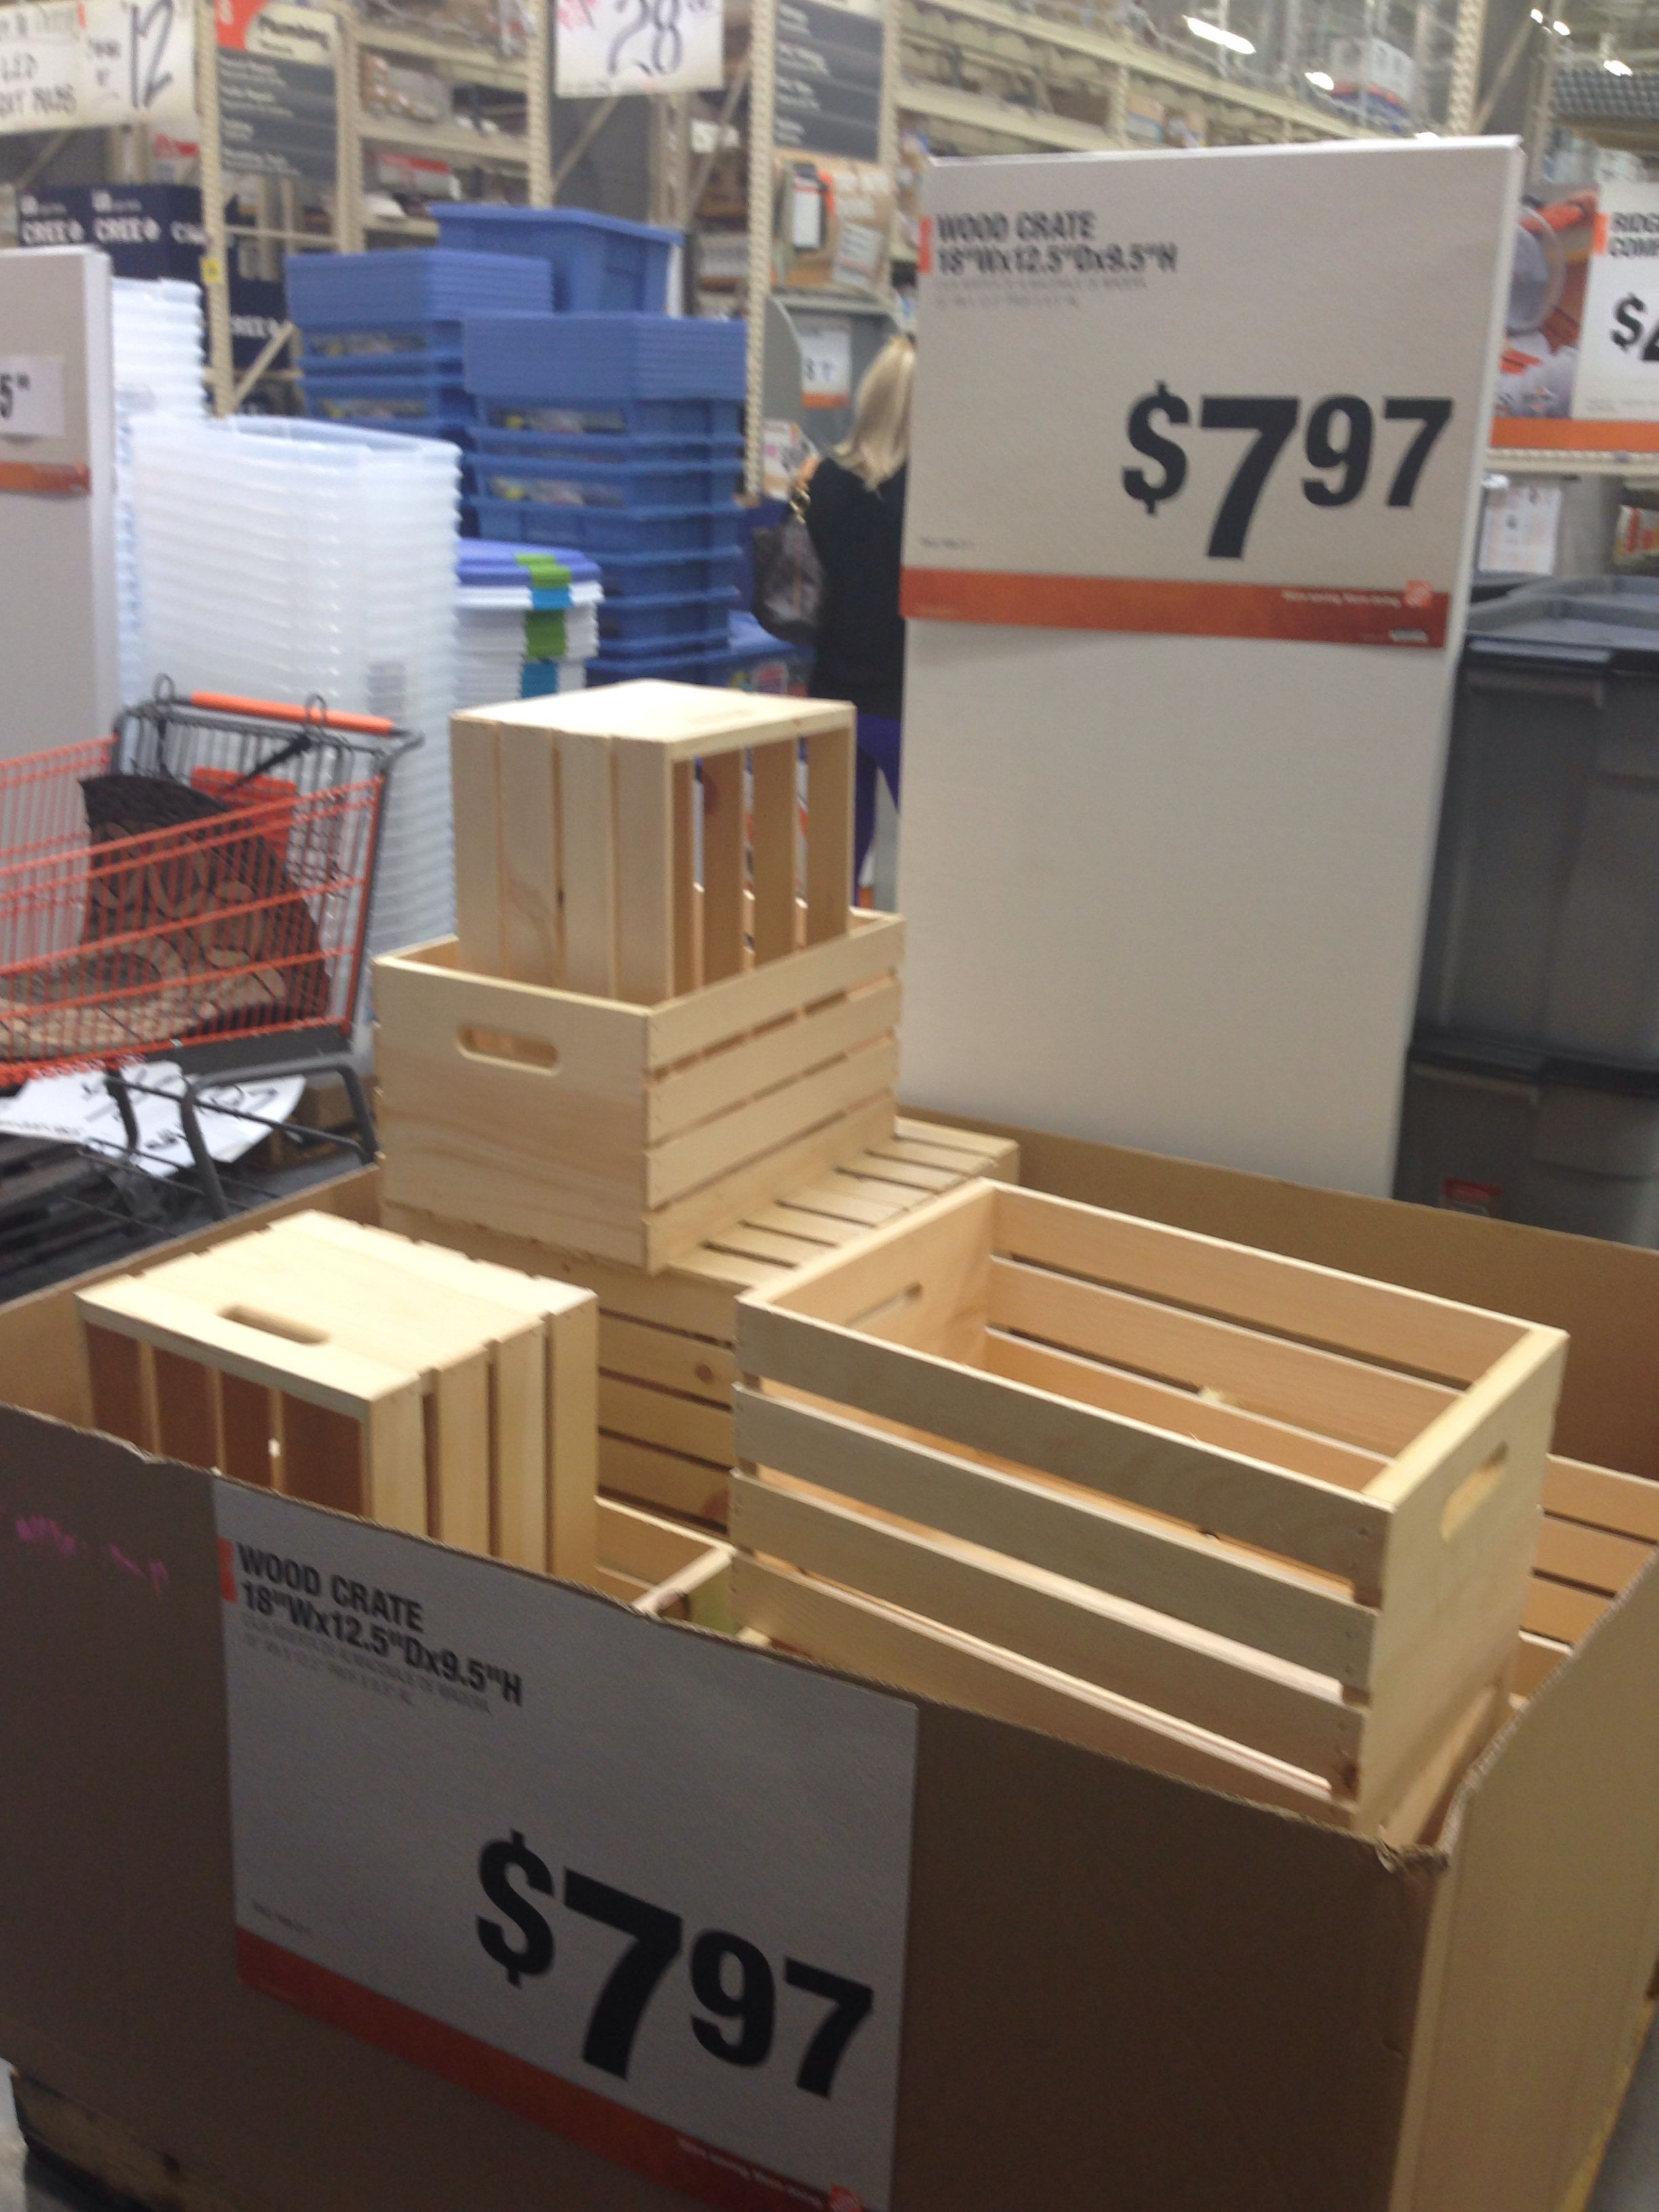 Home Depot Wood Doors Exterior: Instead Of Michaels Or Joann's, Buy Wooden Crates At Home